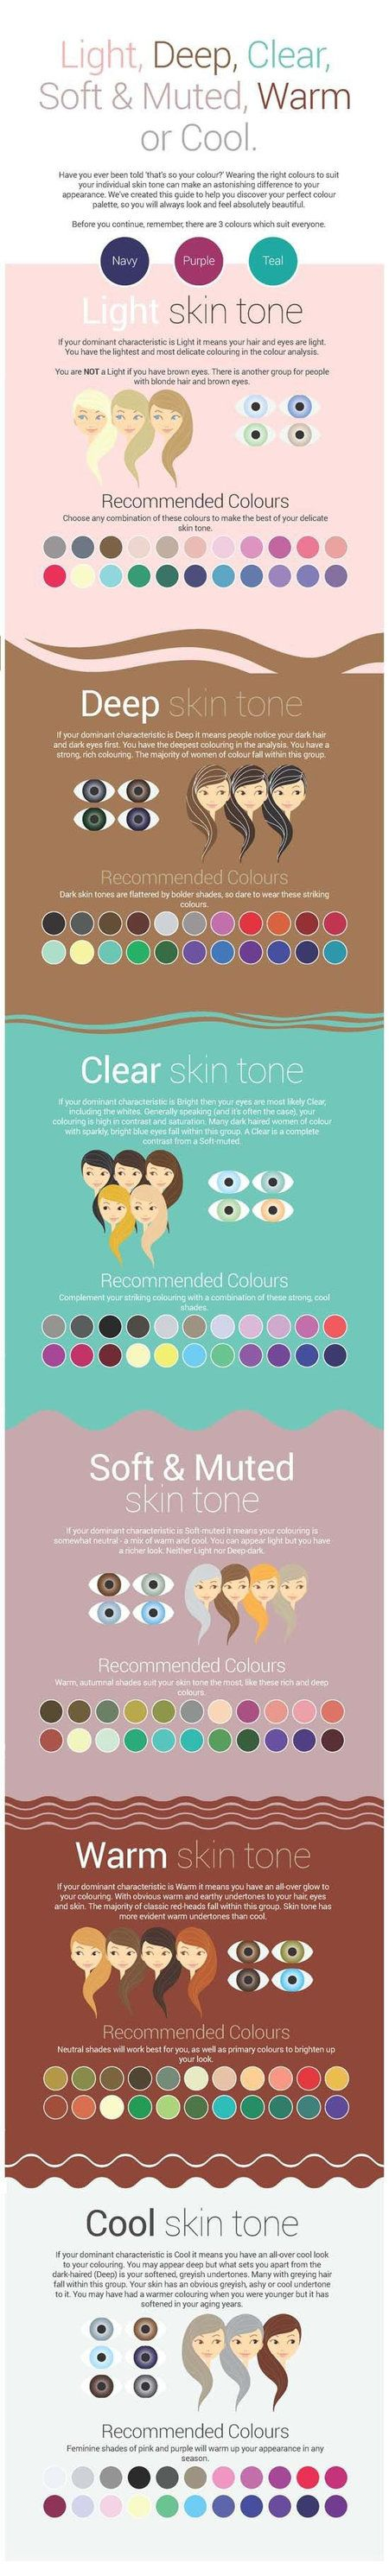 6 Skin Tone Types & best colors to wear!